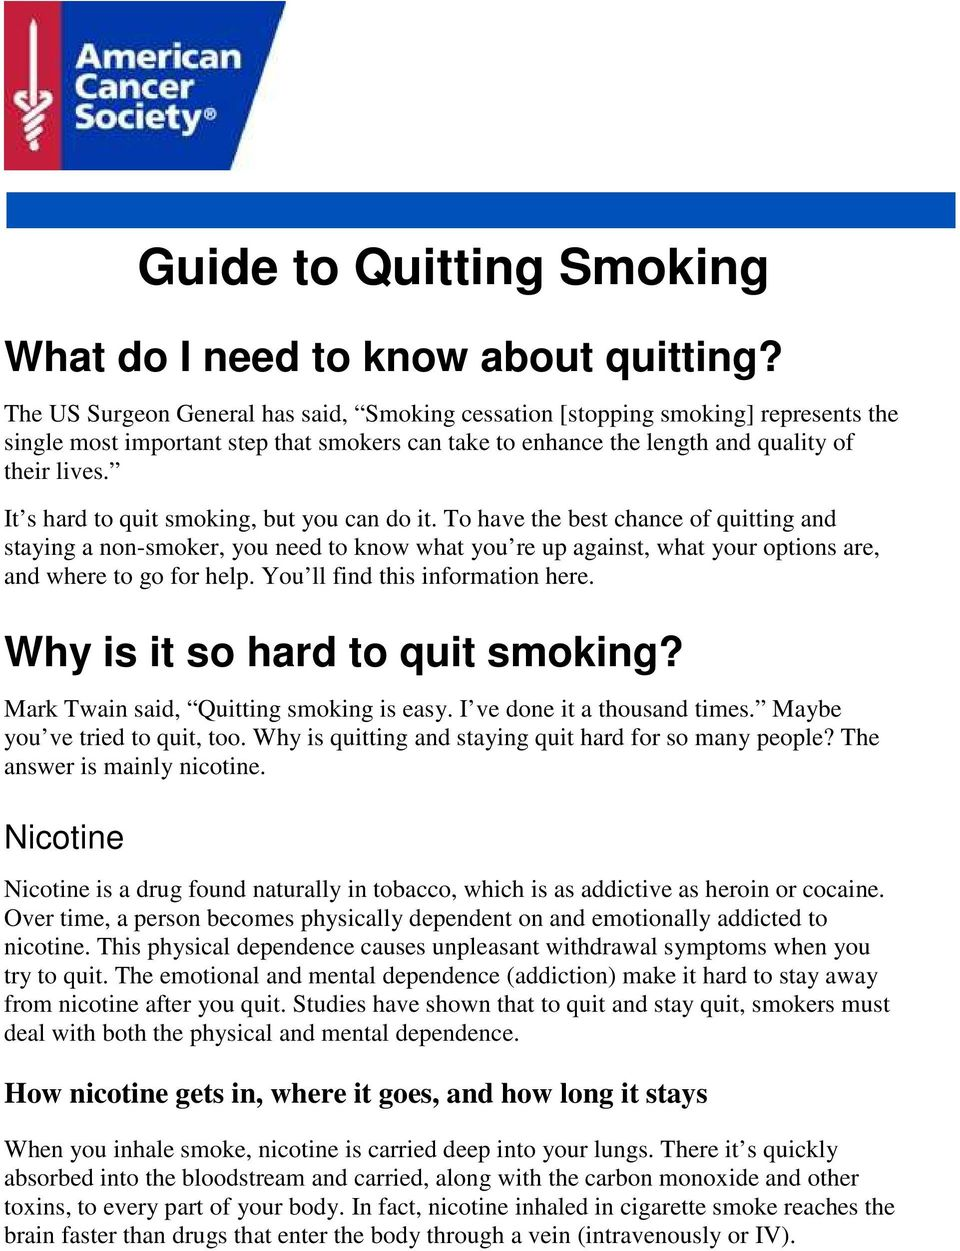 It s hard to quit smoking, but you can do it. To have the best chance of quitting and staying a non-smoker, you need to know what you re up against, what your options are, and where to go for help.